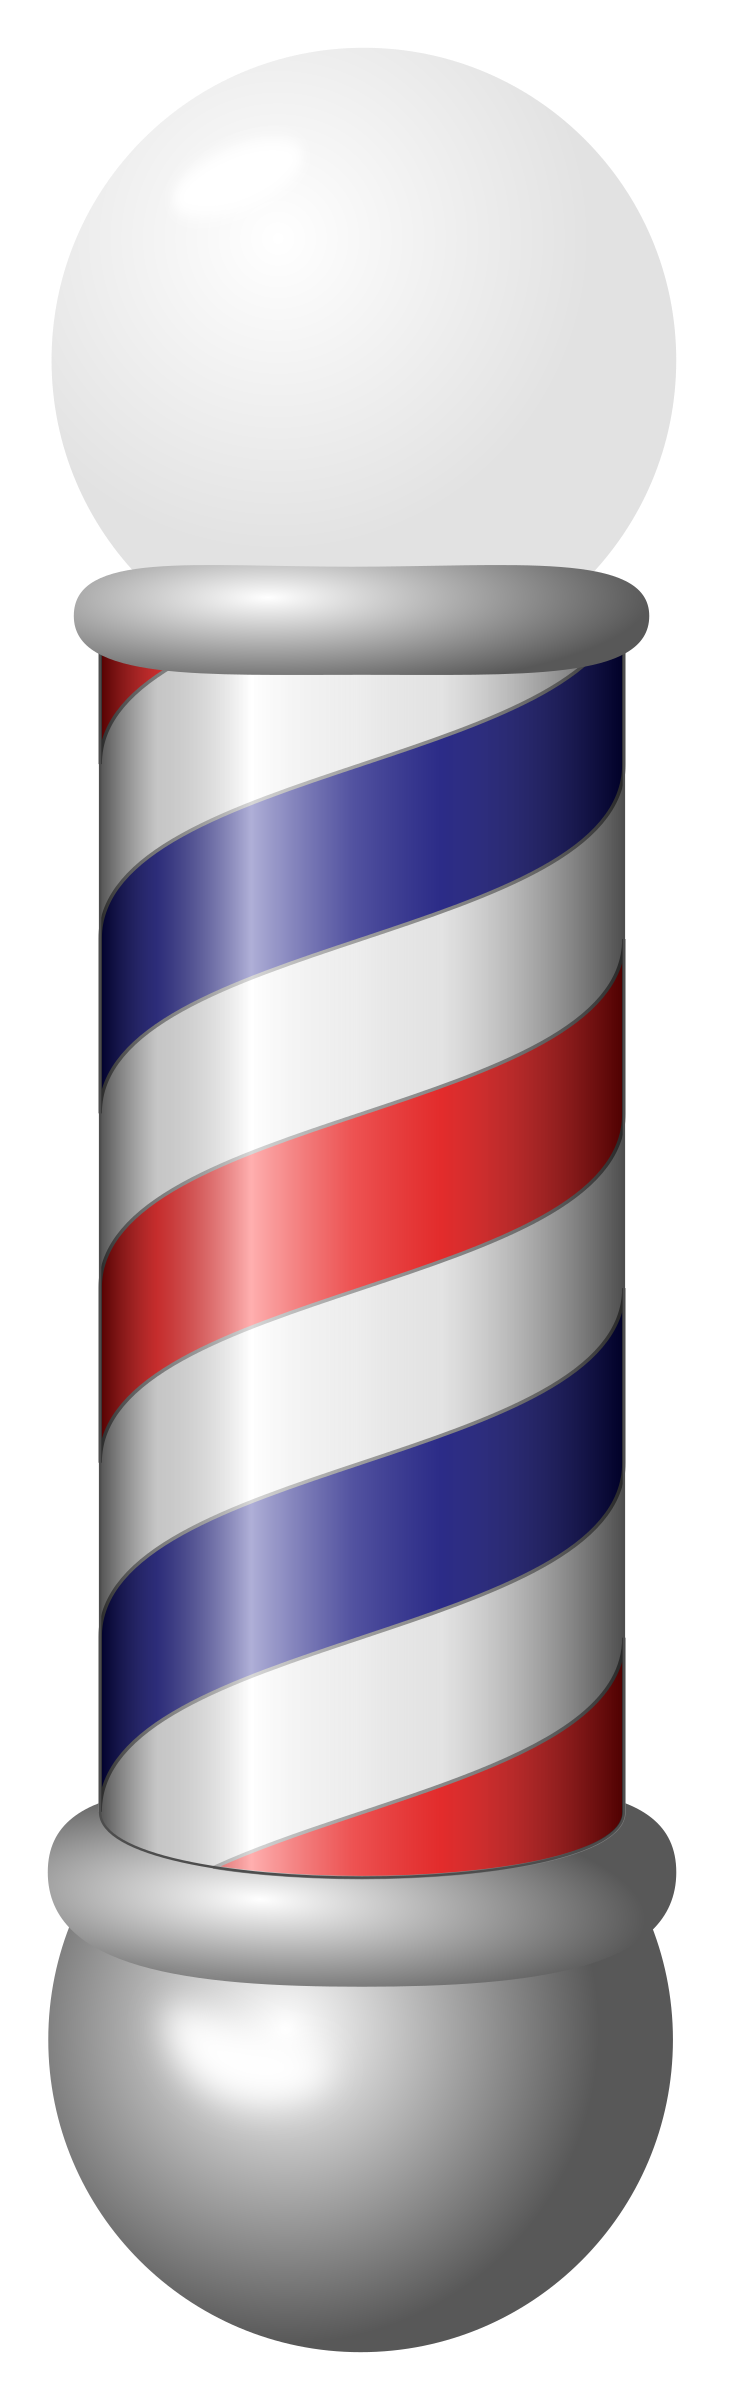 picture freeuse library Haircut clipart barber shop pole. Free on dumielauxepices net